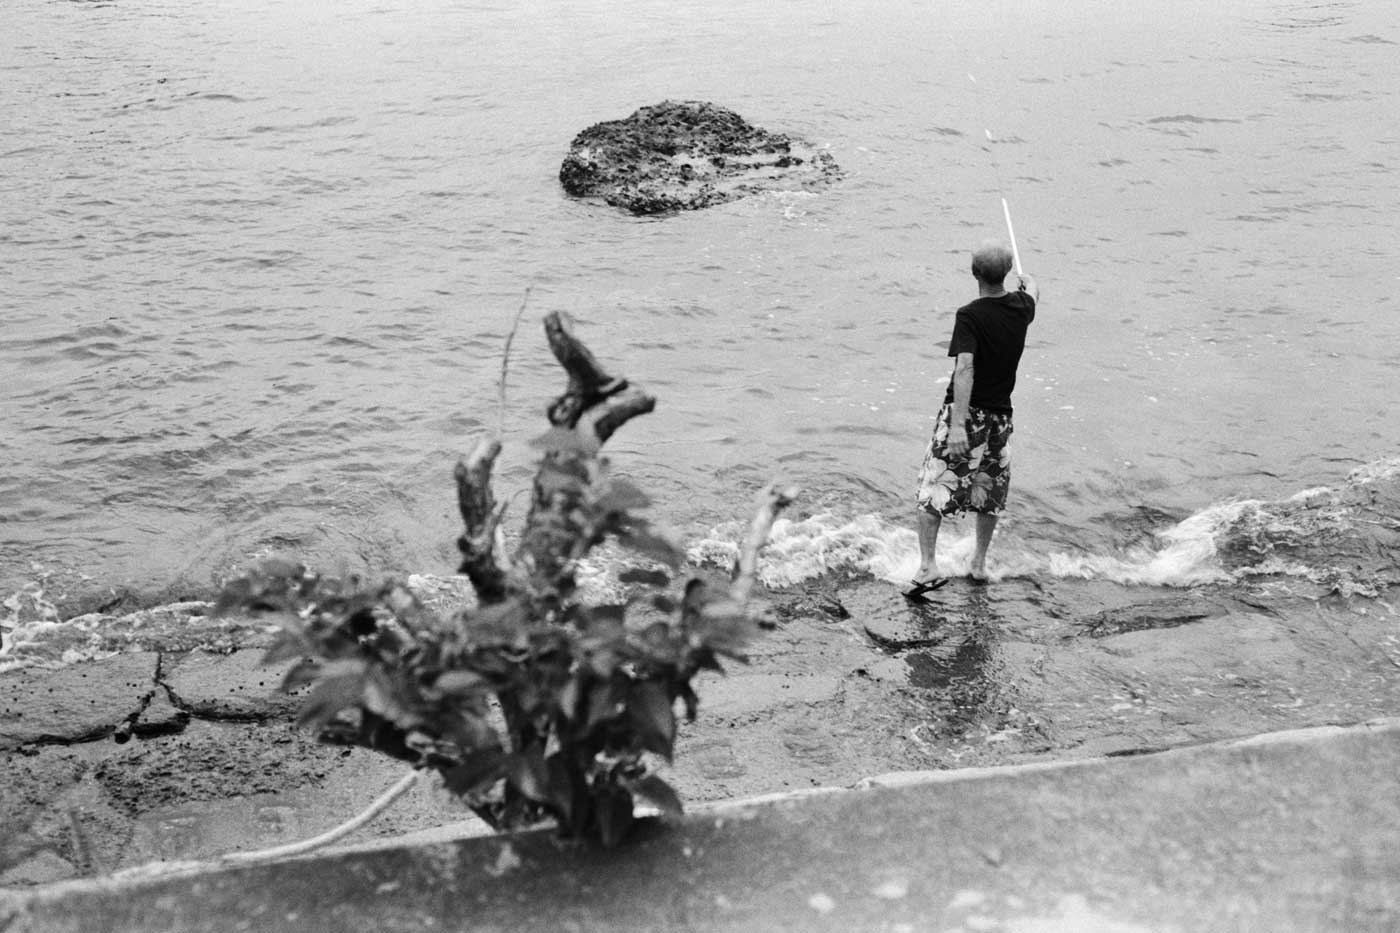 Leica-Summicron-50mm-50-f2-Rigid-Type-2-II-lens-review-double-x-kodak-eastman-5222-fishing-composition-shore-men-hk-hong-kong-pengchau-walk